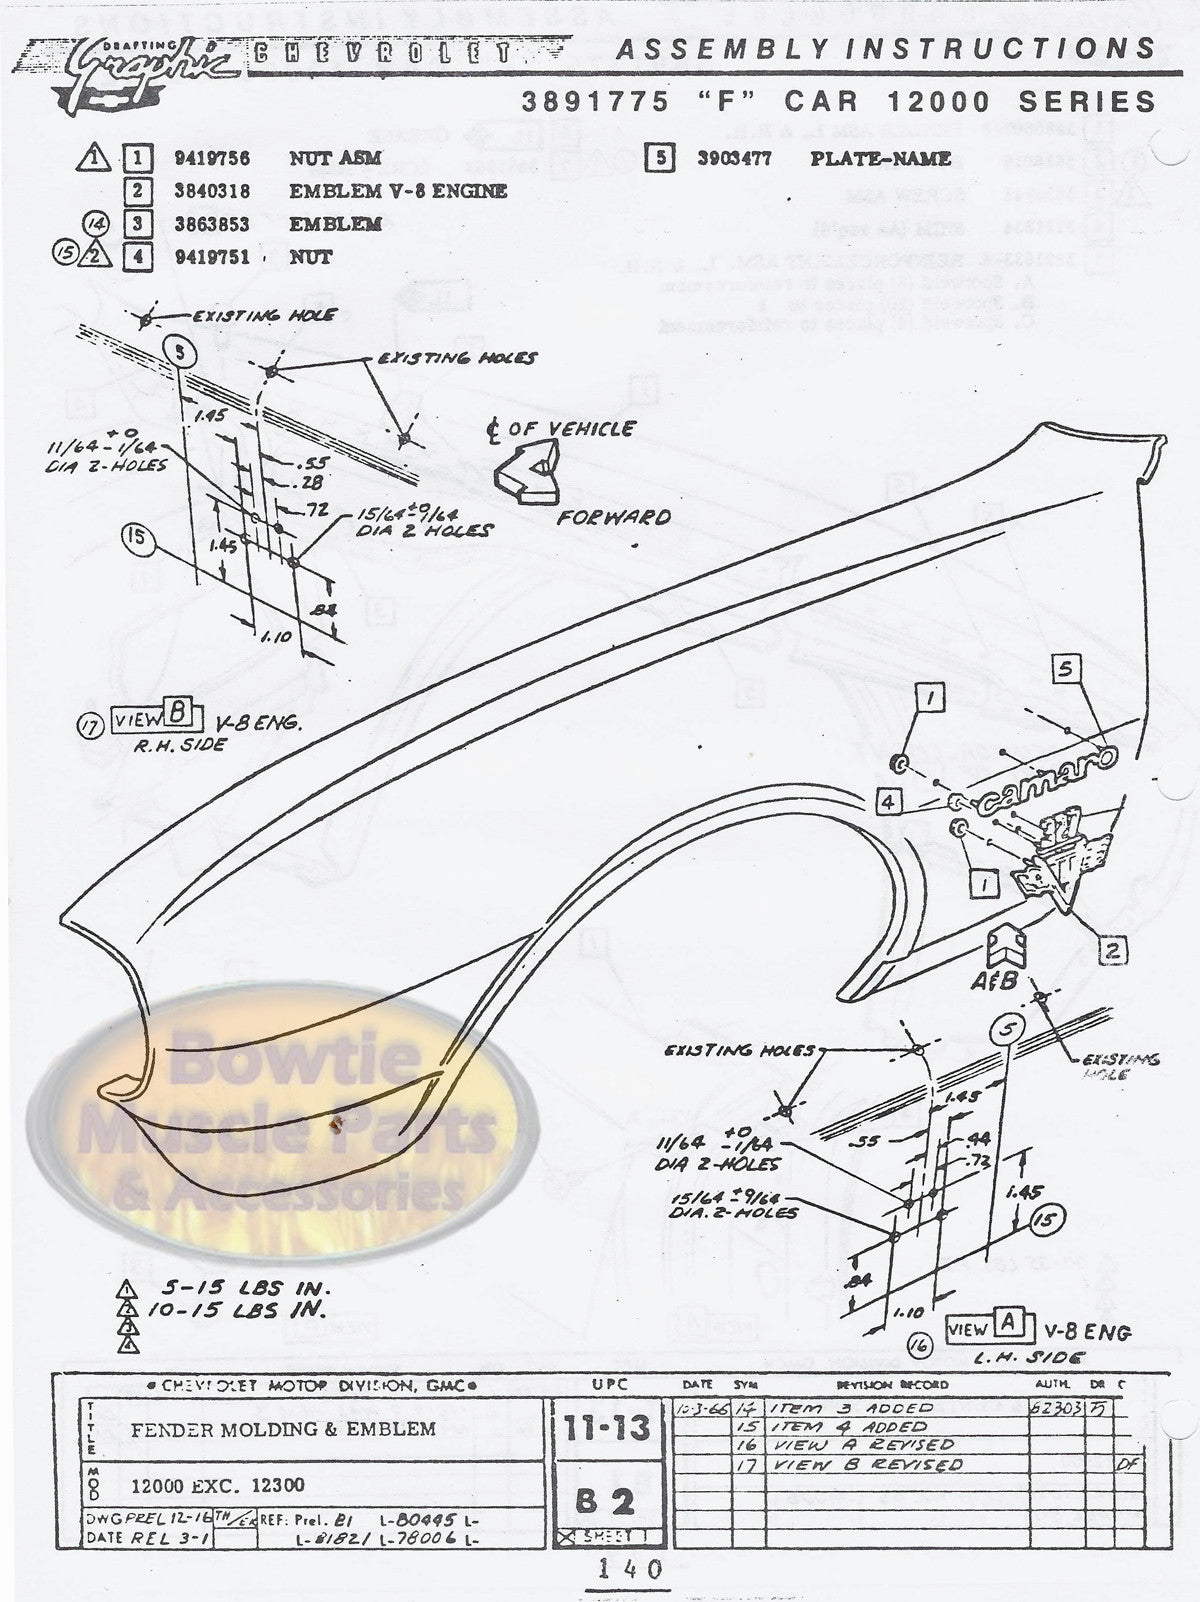 1967 67 camaro factory assembly manual z28 ss rs 418 pages rh bowtiemuscleparts com 66 Camaro 1967 camaro factory assembly manual